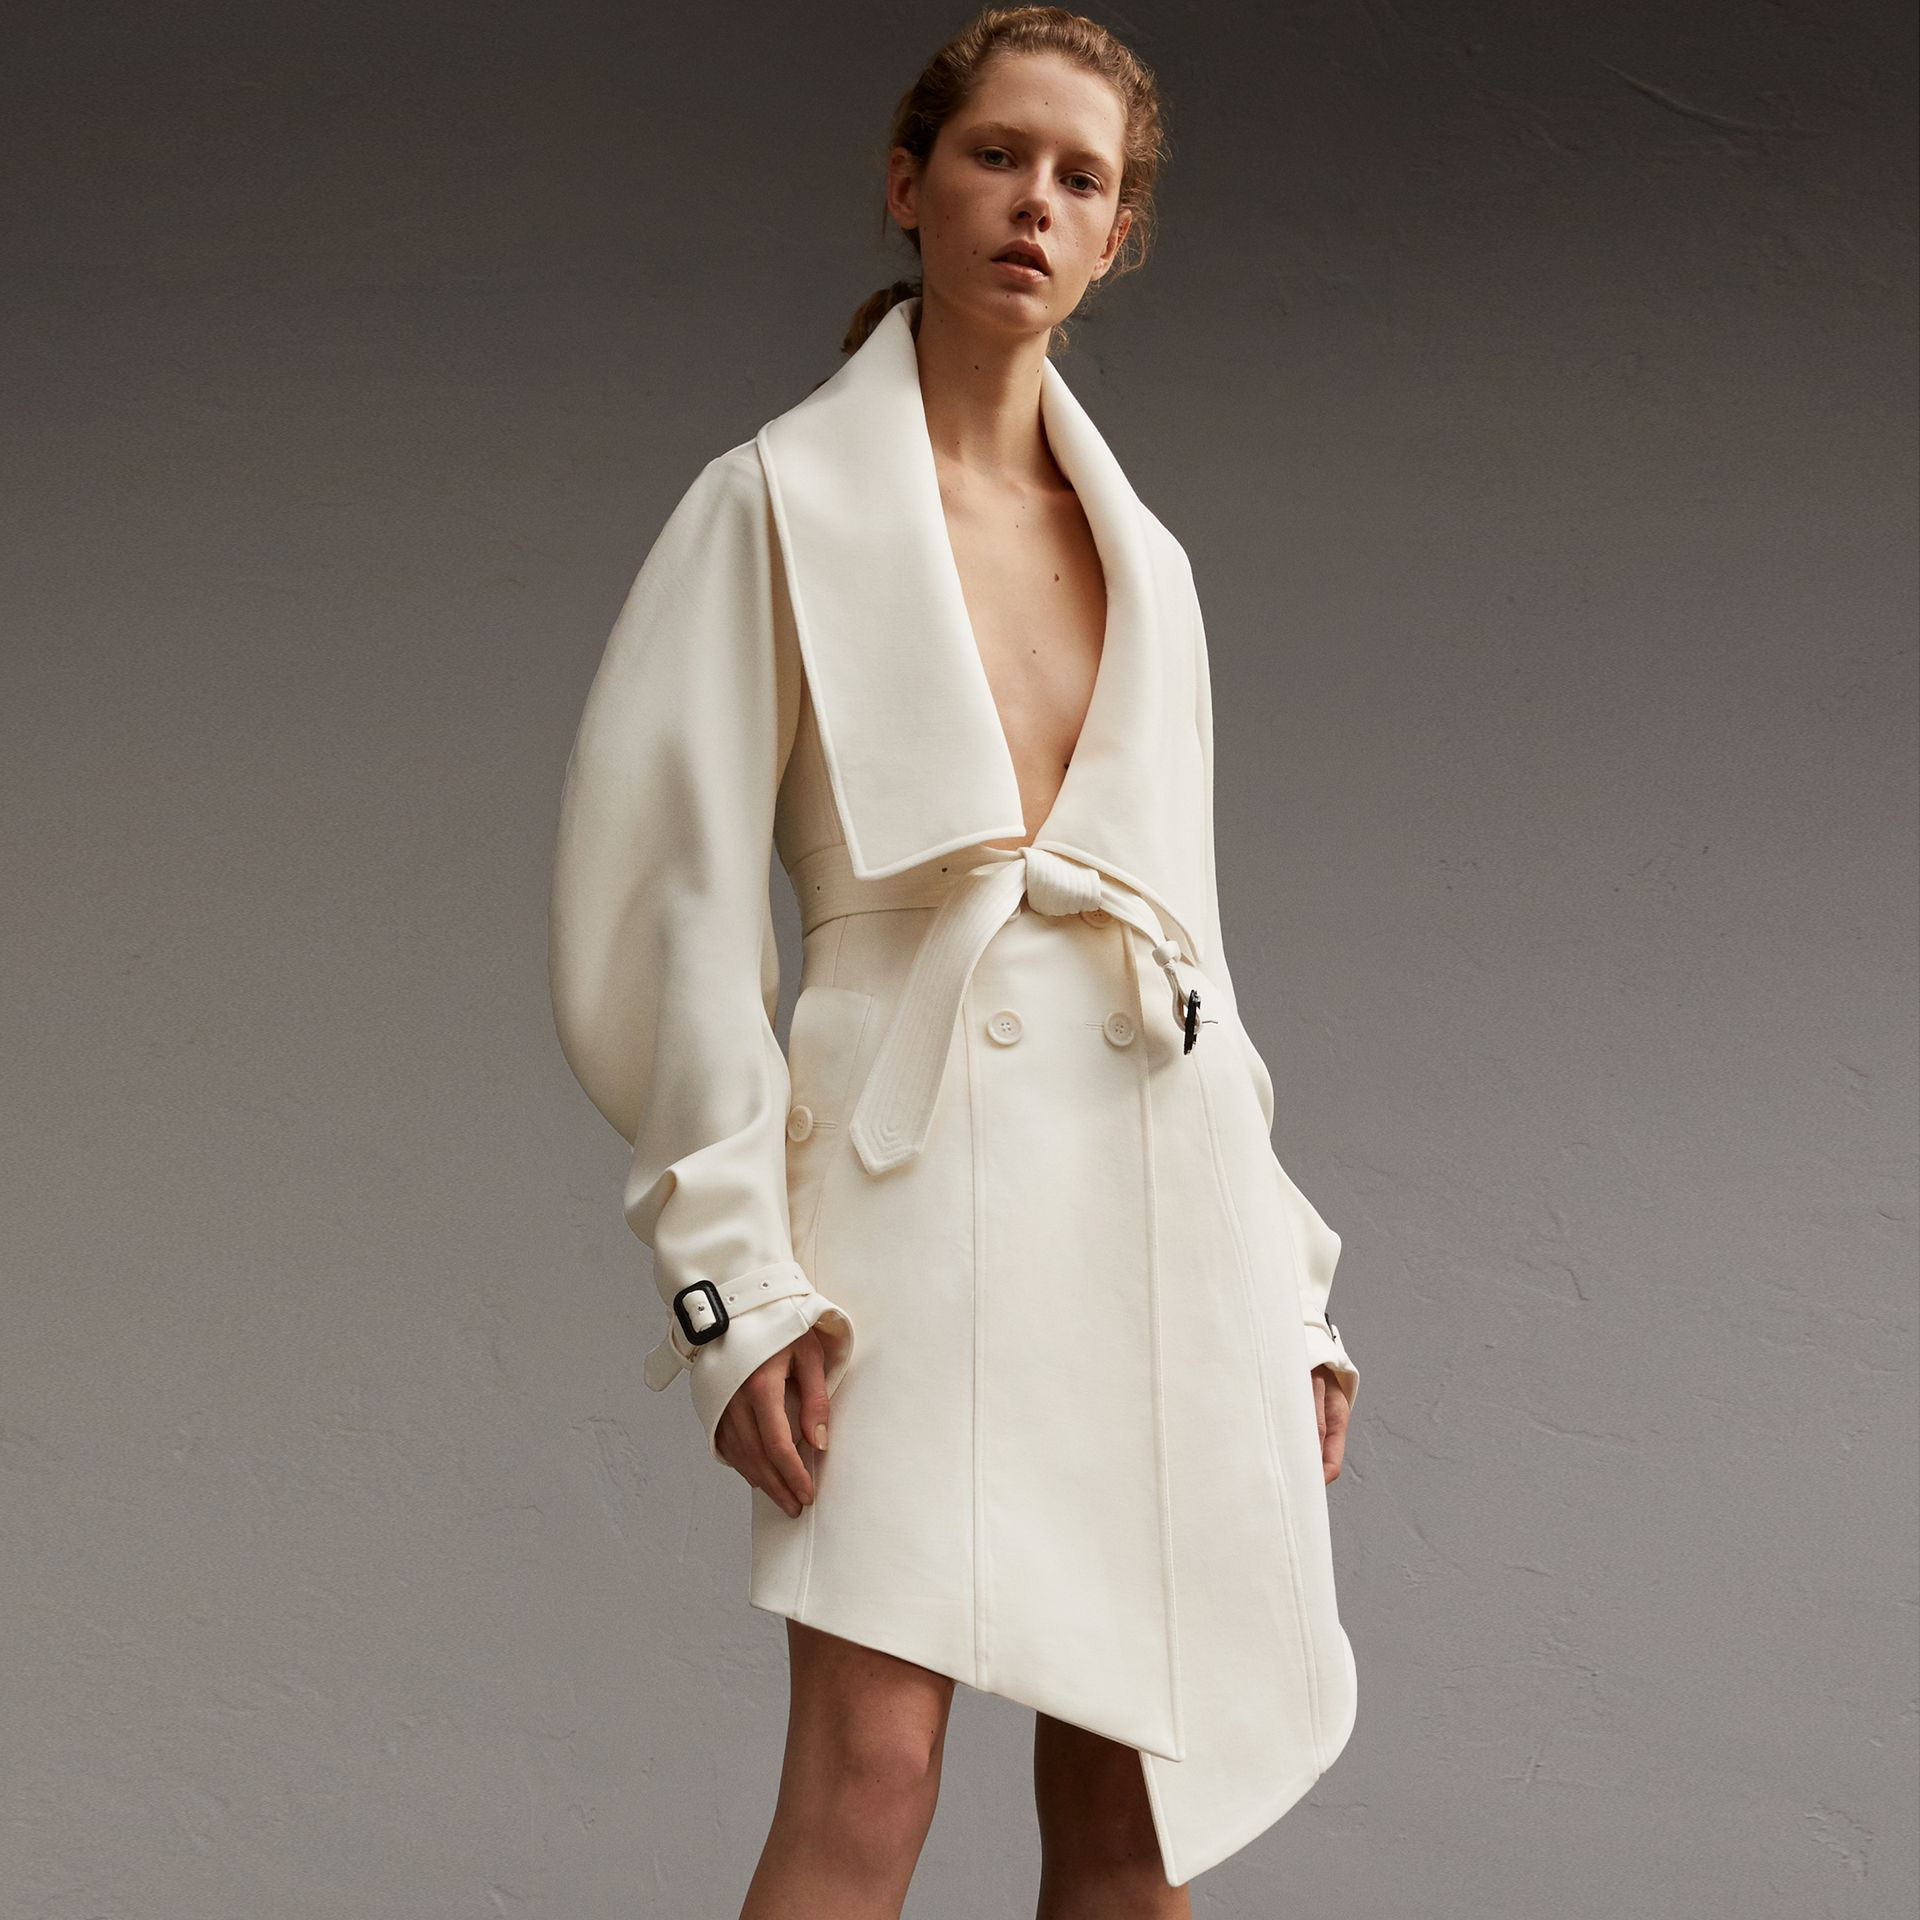 Lightweight Double-faced Wool Twill Asymmetric Coat - Women | Burberry Australia - gallery image 1